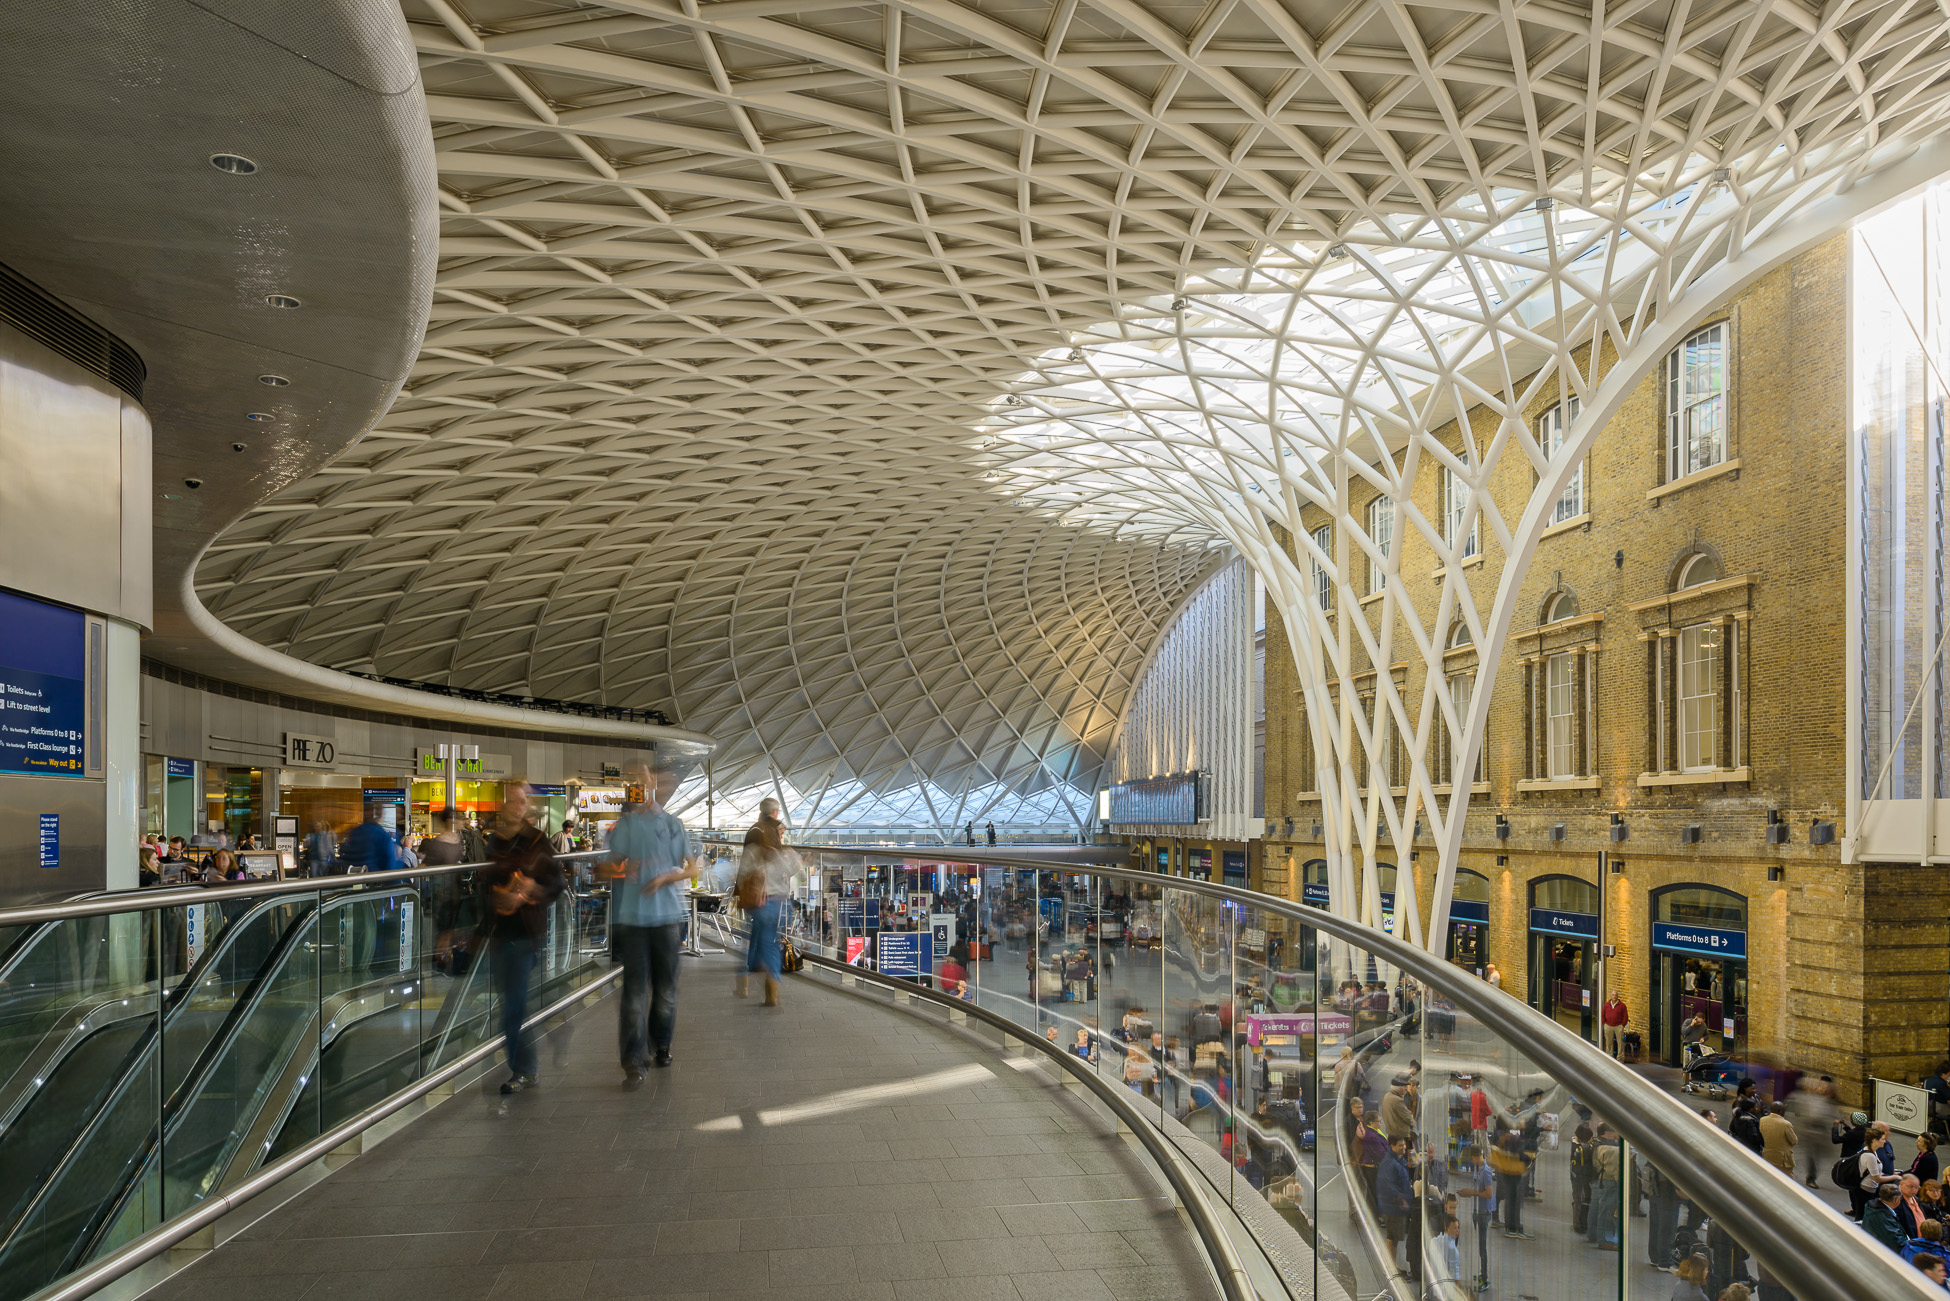 54-doublespace-architectural-photography-london-Kings-Cross-Station-McAslan-.jpg